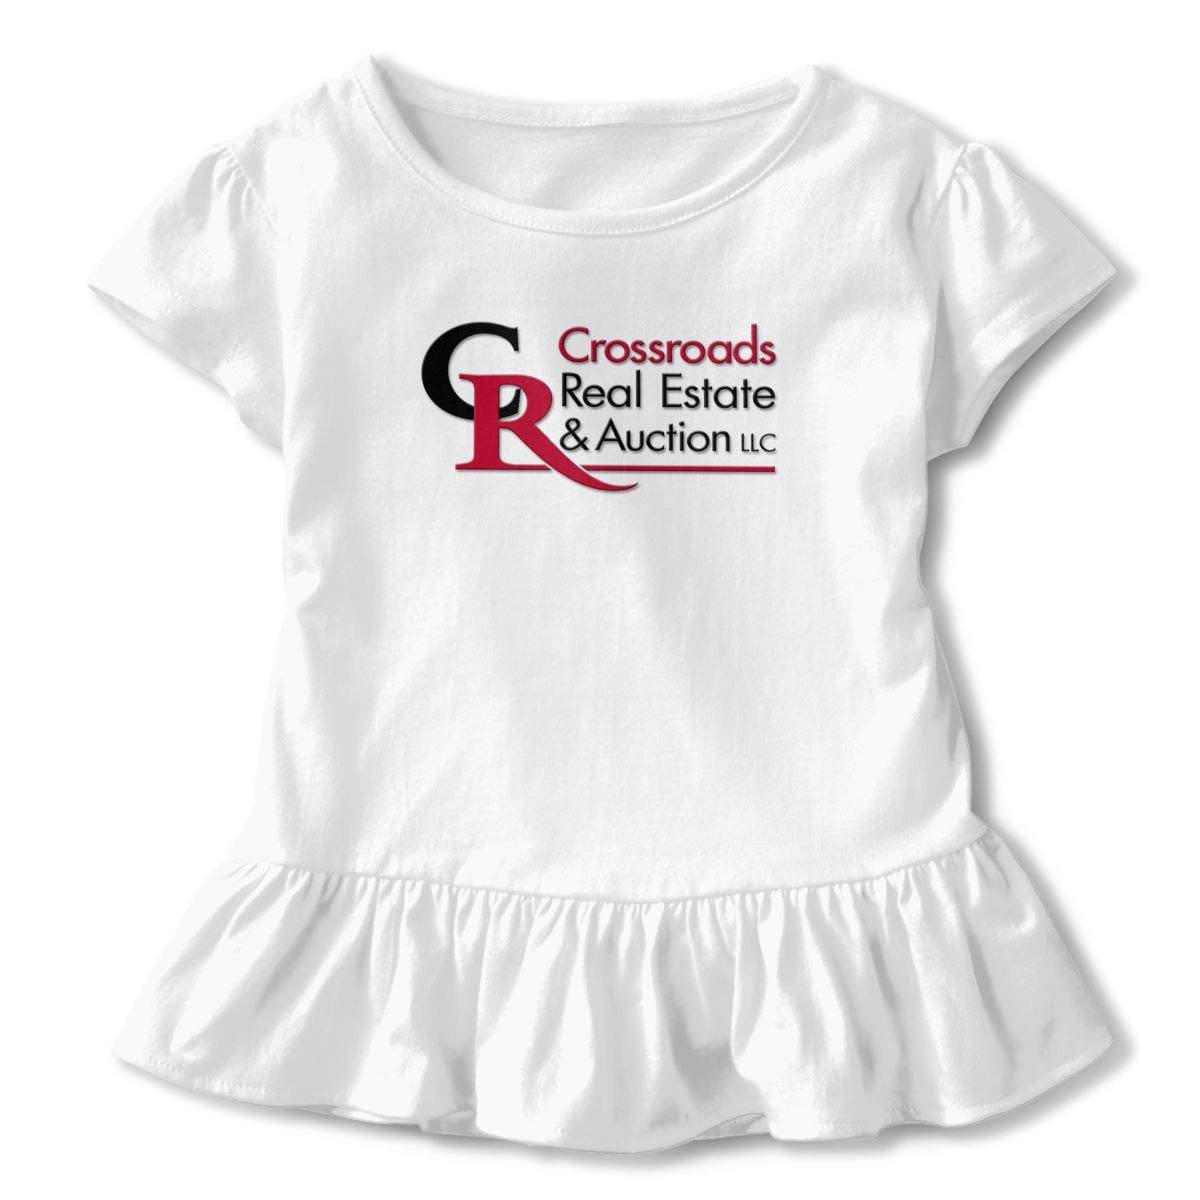 Crossroads Real Estate Auction Shirt Comfort Baby Girls Flounced T Shirts Graphic Tees for 2-6T Kids Girls